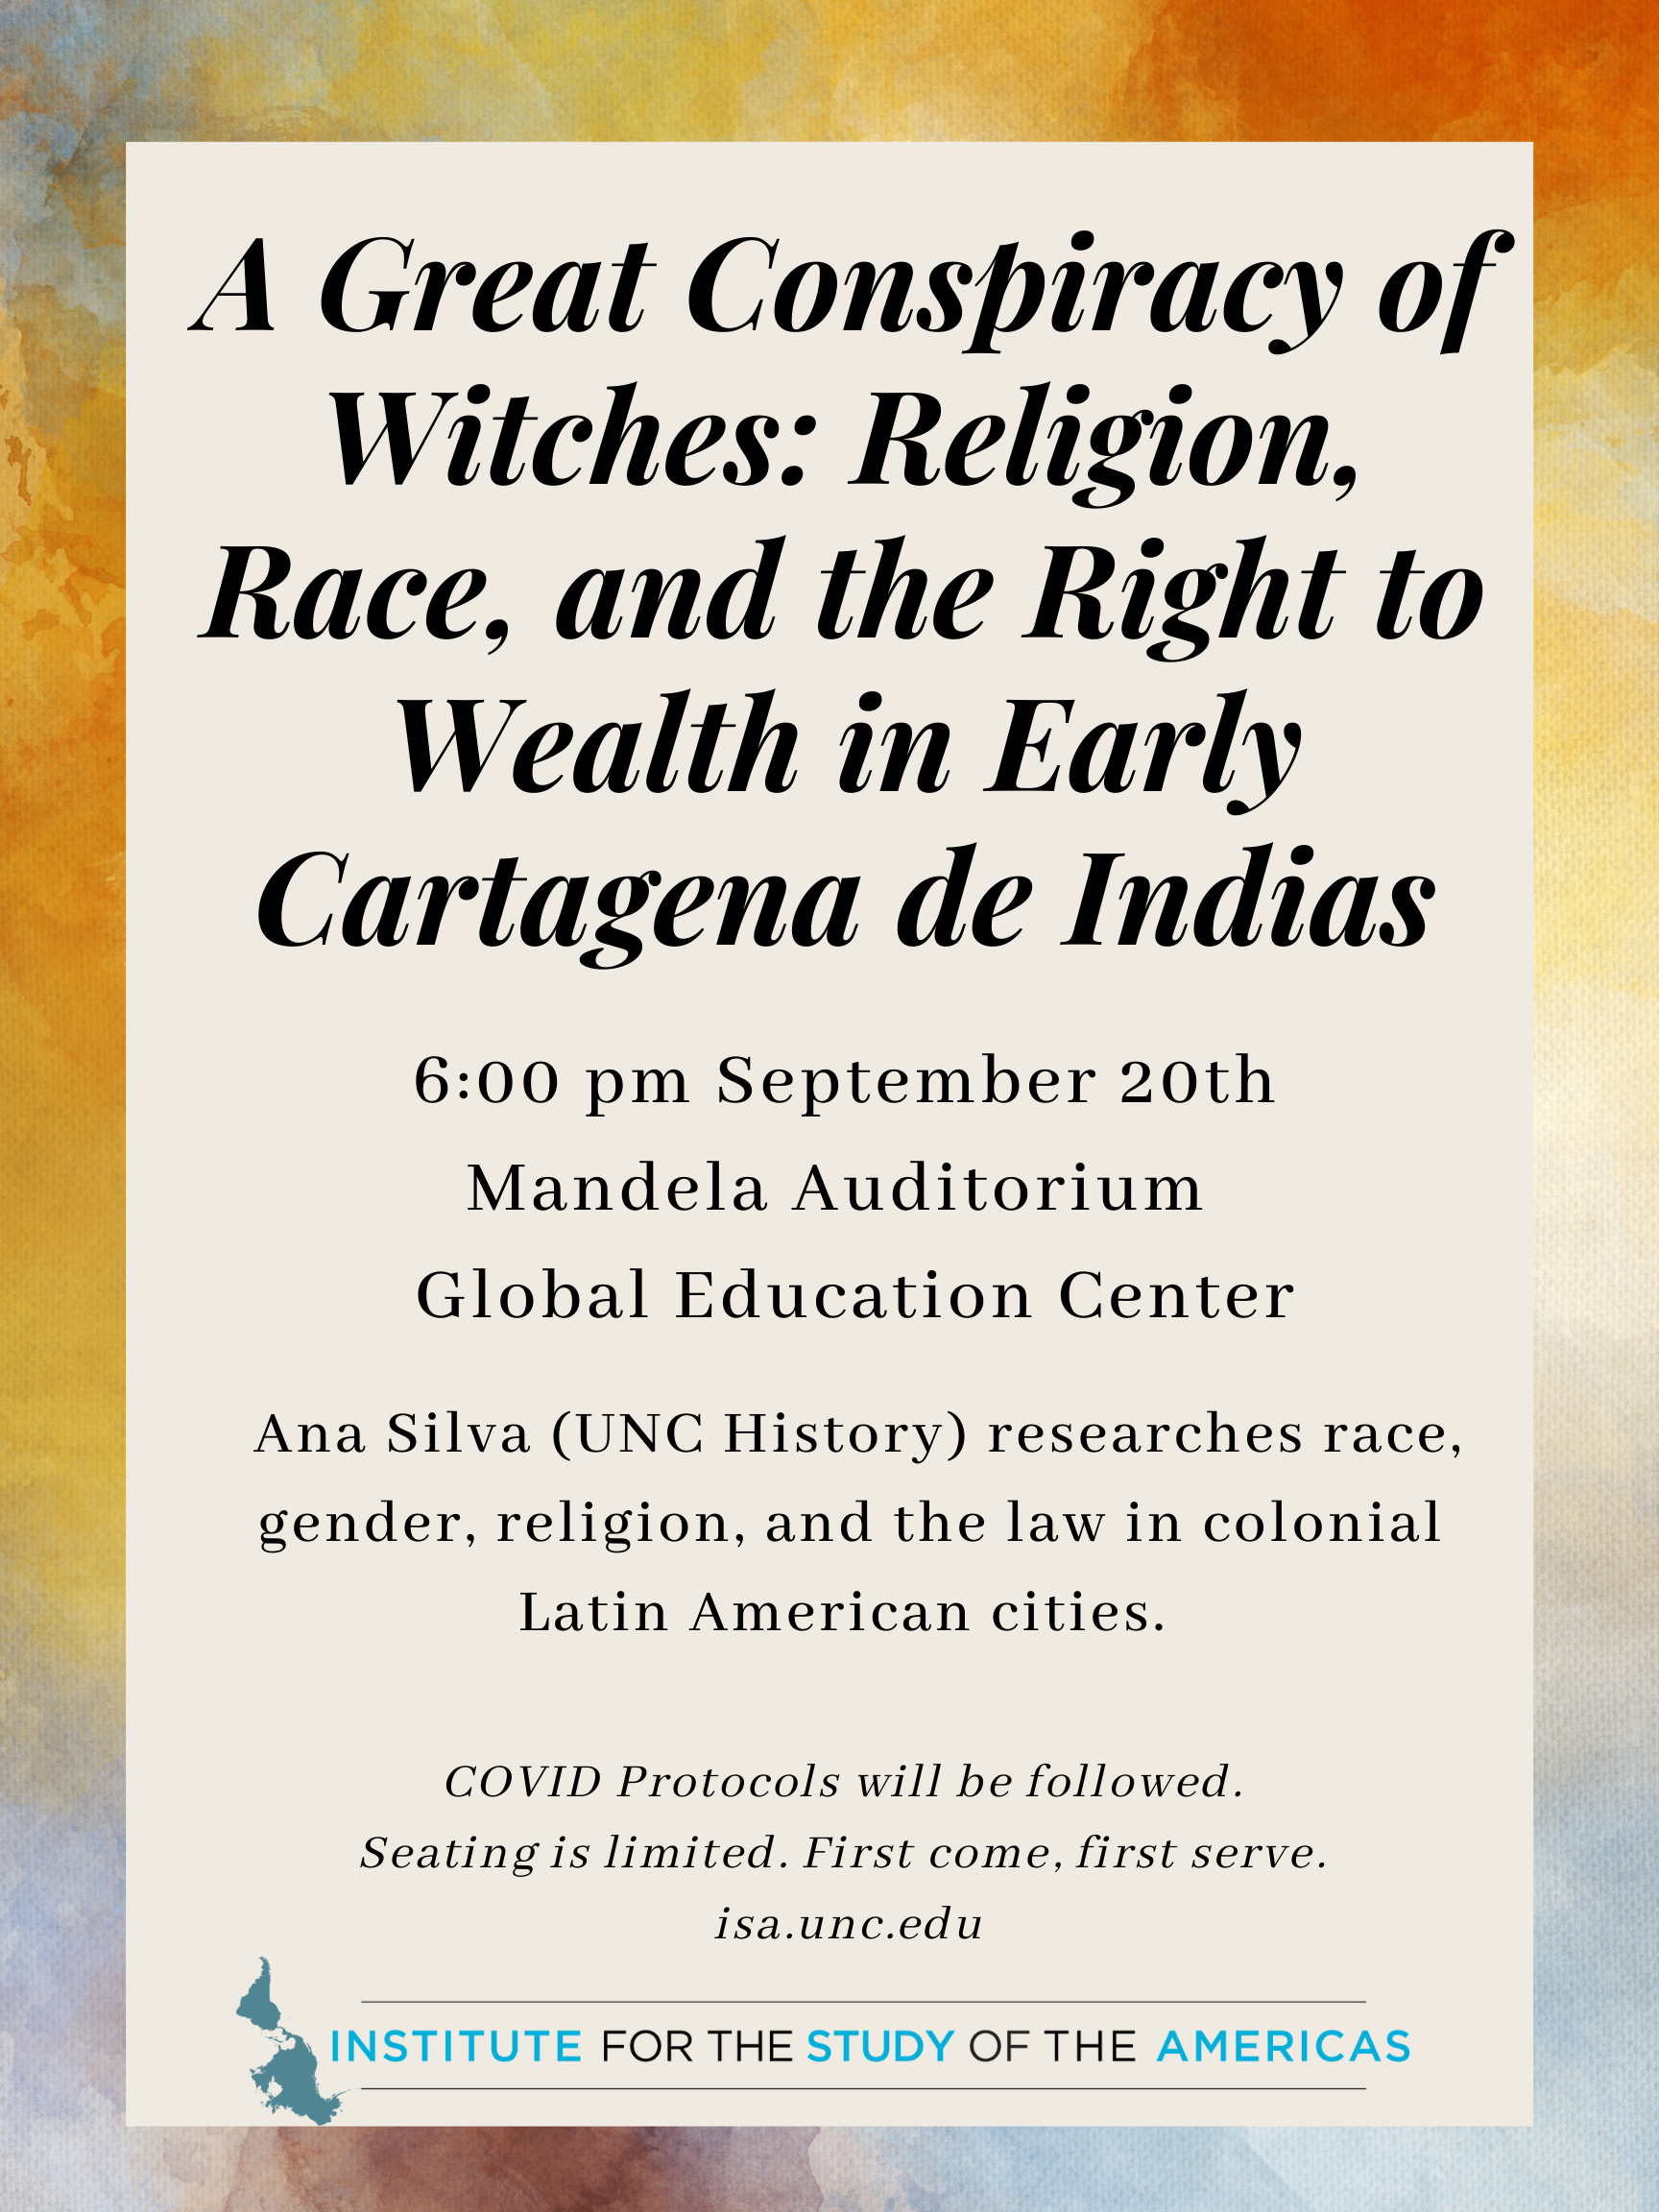 A Great Conspiracy of Witches: Religion, Race, and the Right to Wealth in Early Cartagena de Indias